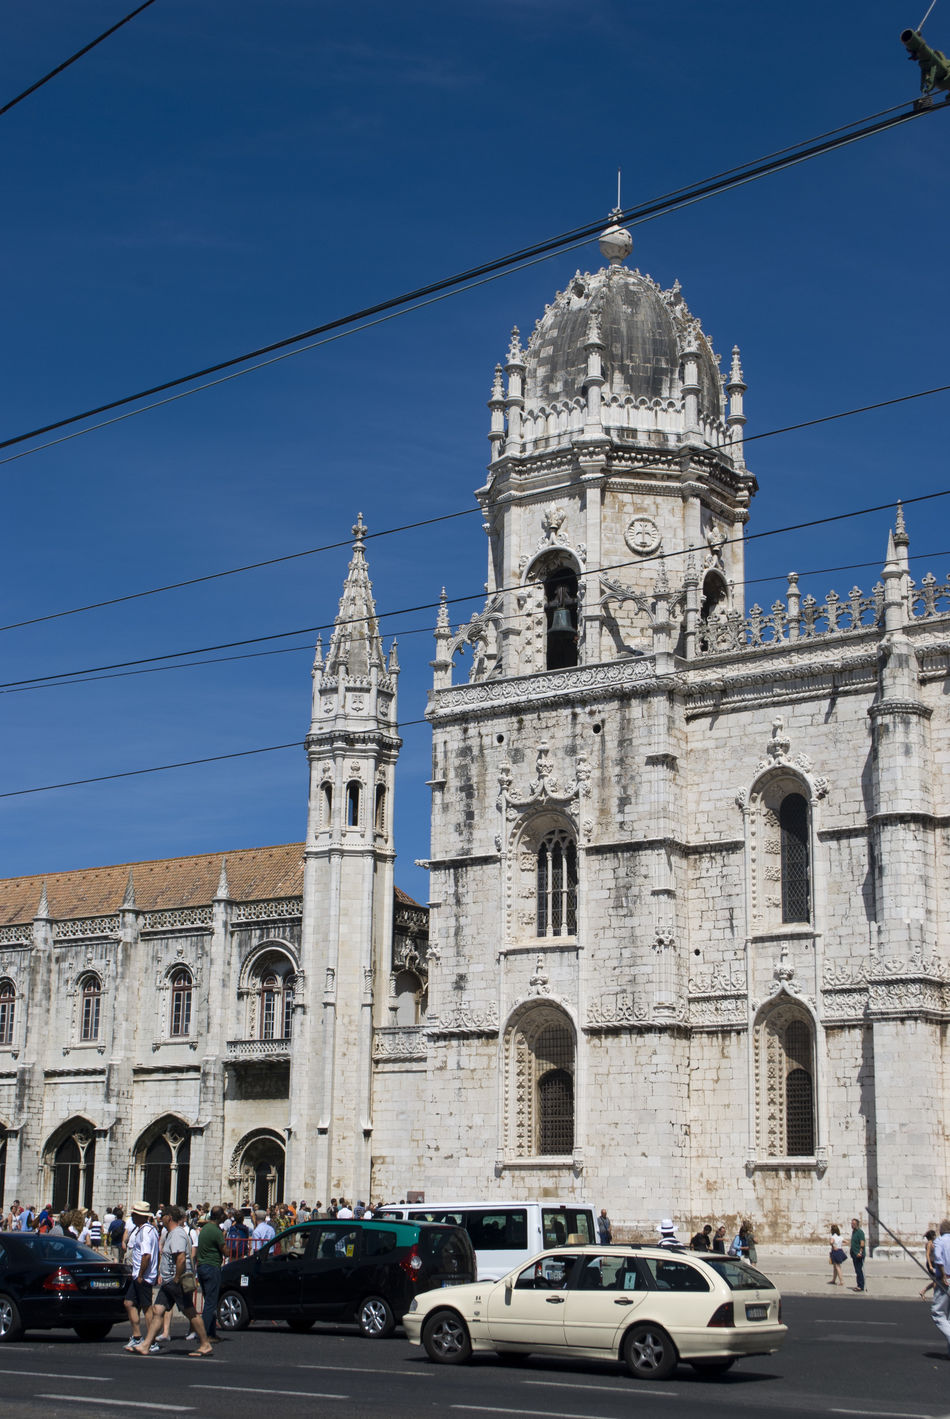 Lisbon Architecture Architecture Belem Tower Belen Tower Boats Building Exterior City Day Flag Large Group Of People Lisboa Lisboa Roofs Lisboa Square Lisbon Streets Lissabon Outdoors People Place Of Worship Portugal Red Roofs Square Tower Tower De Belem Travel Destinations